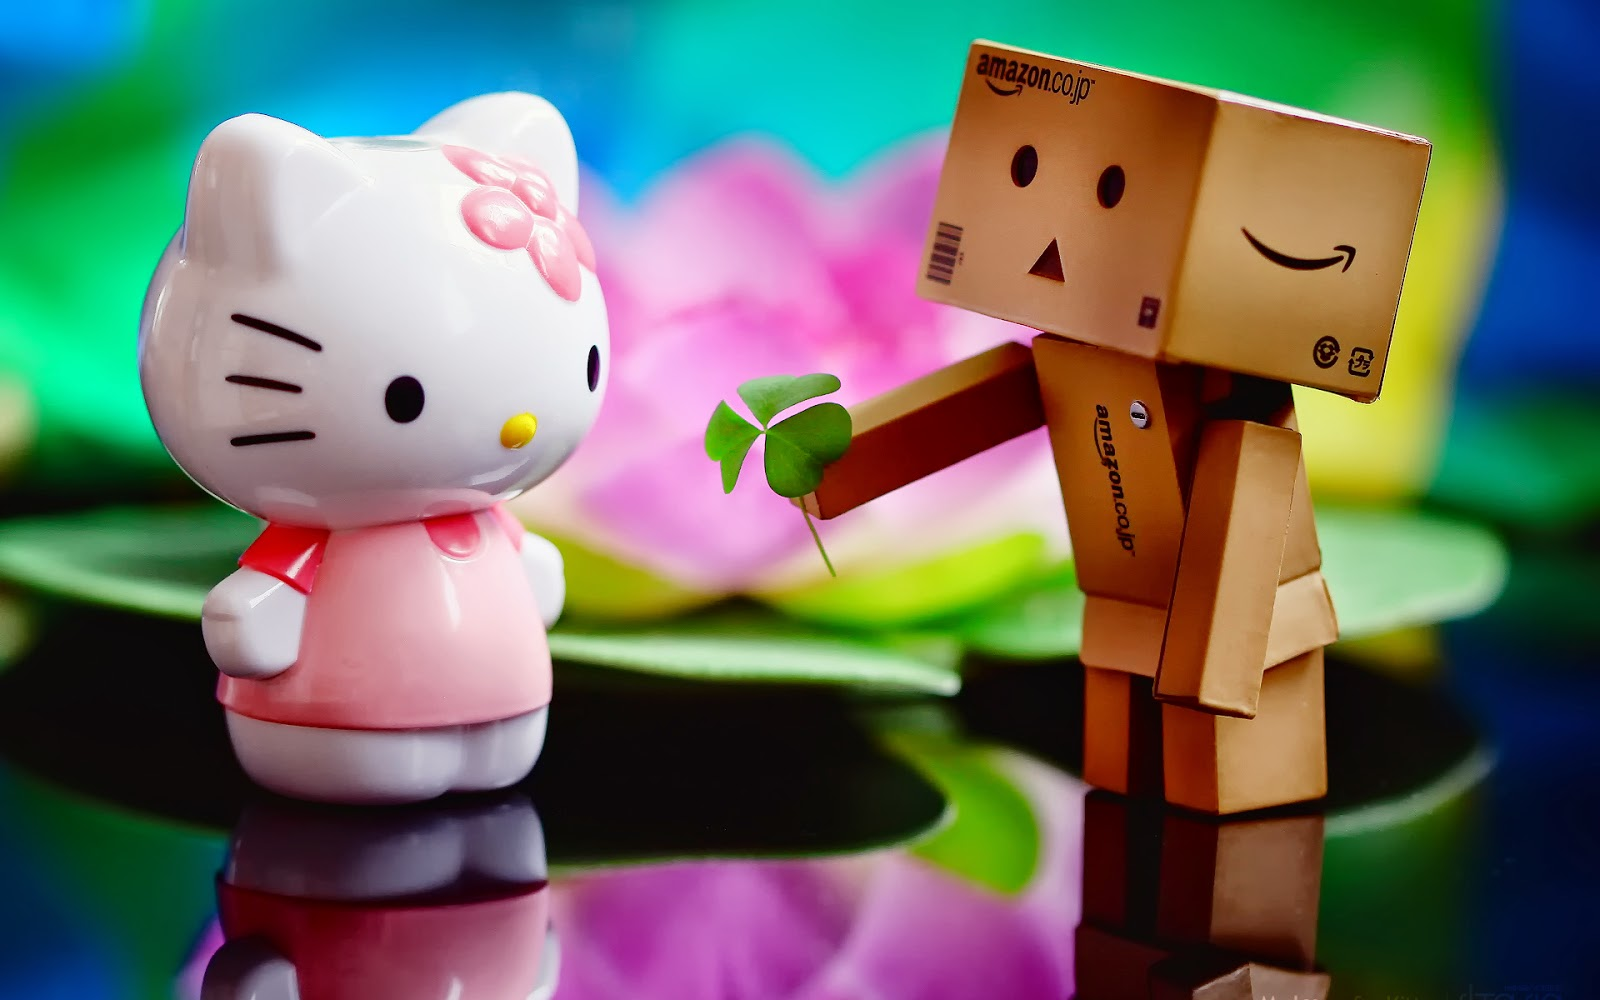 happy valentines day cute loving images wallpaper in 1080p